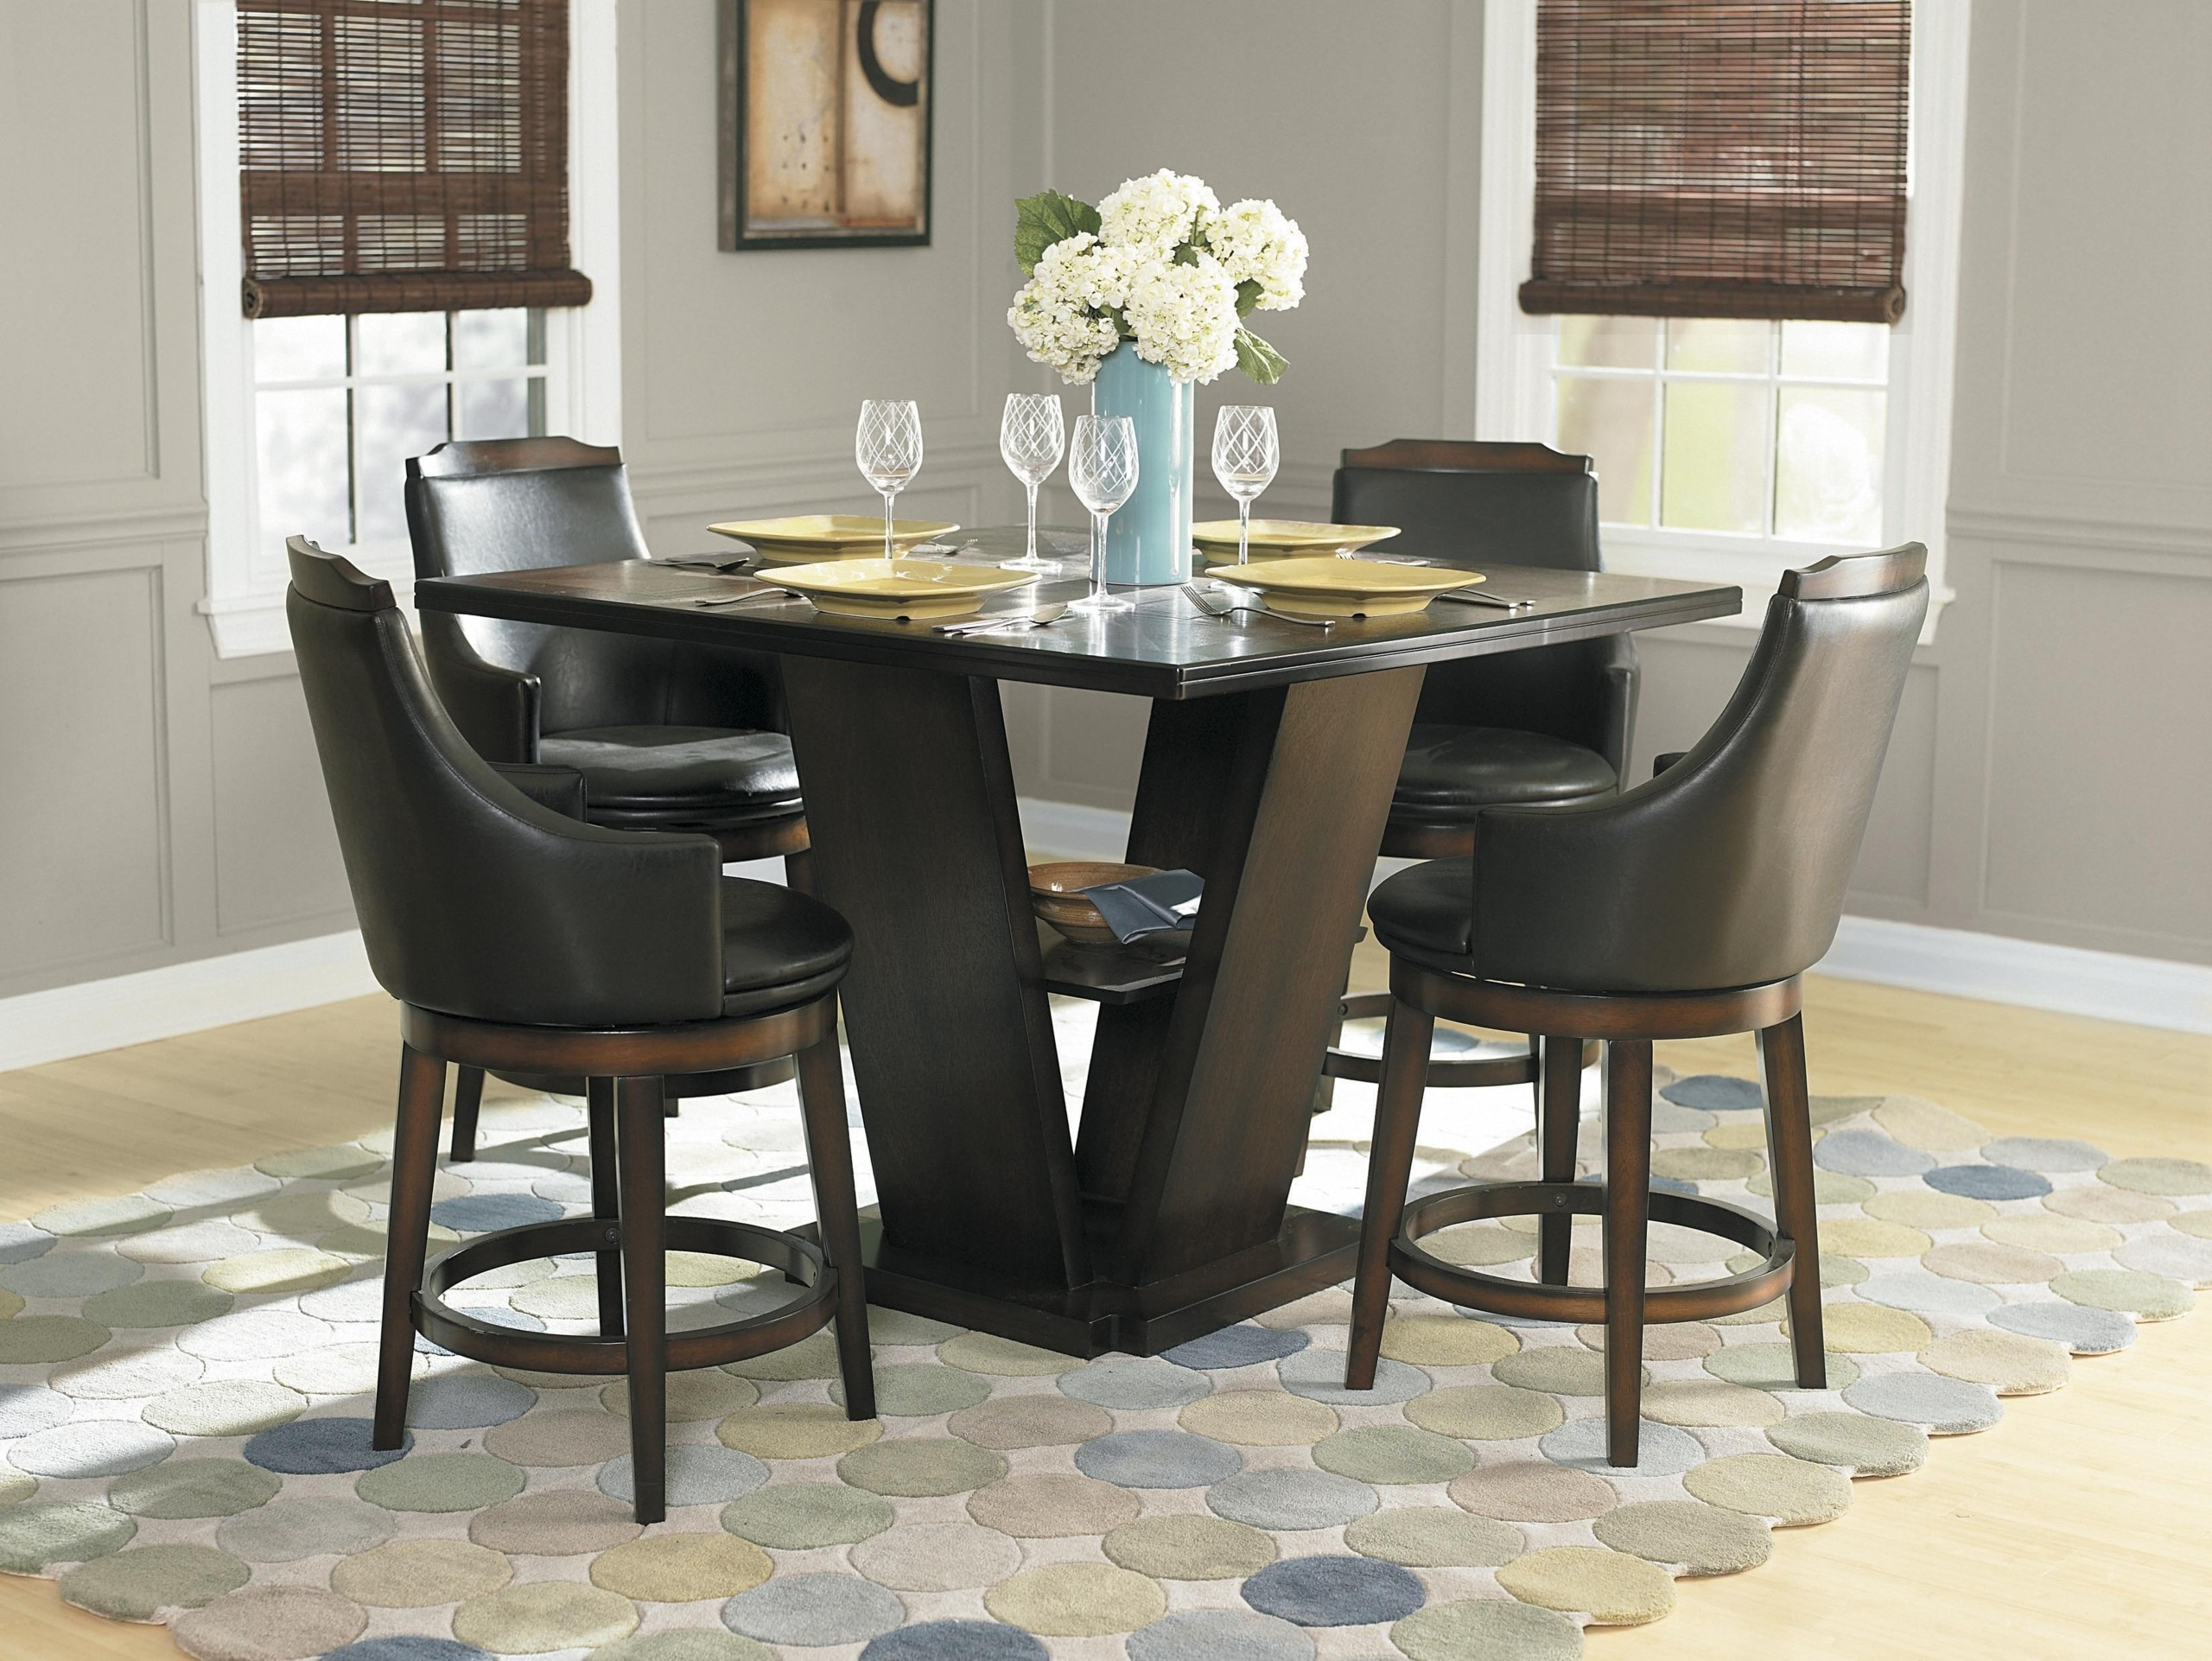 unique counter height dining sets ideas on foter rh foter com High Bar Tables Dining Room Counter High Dining Room Tables Seat 8